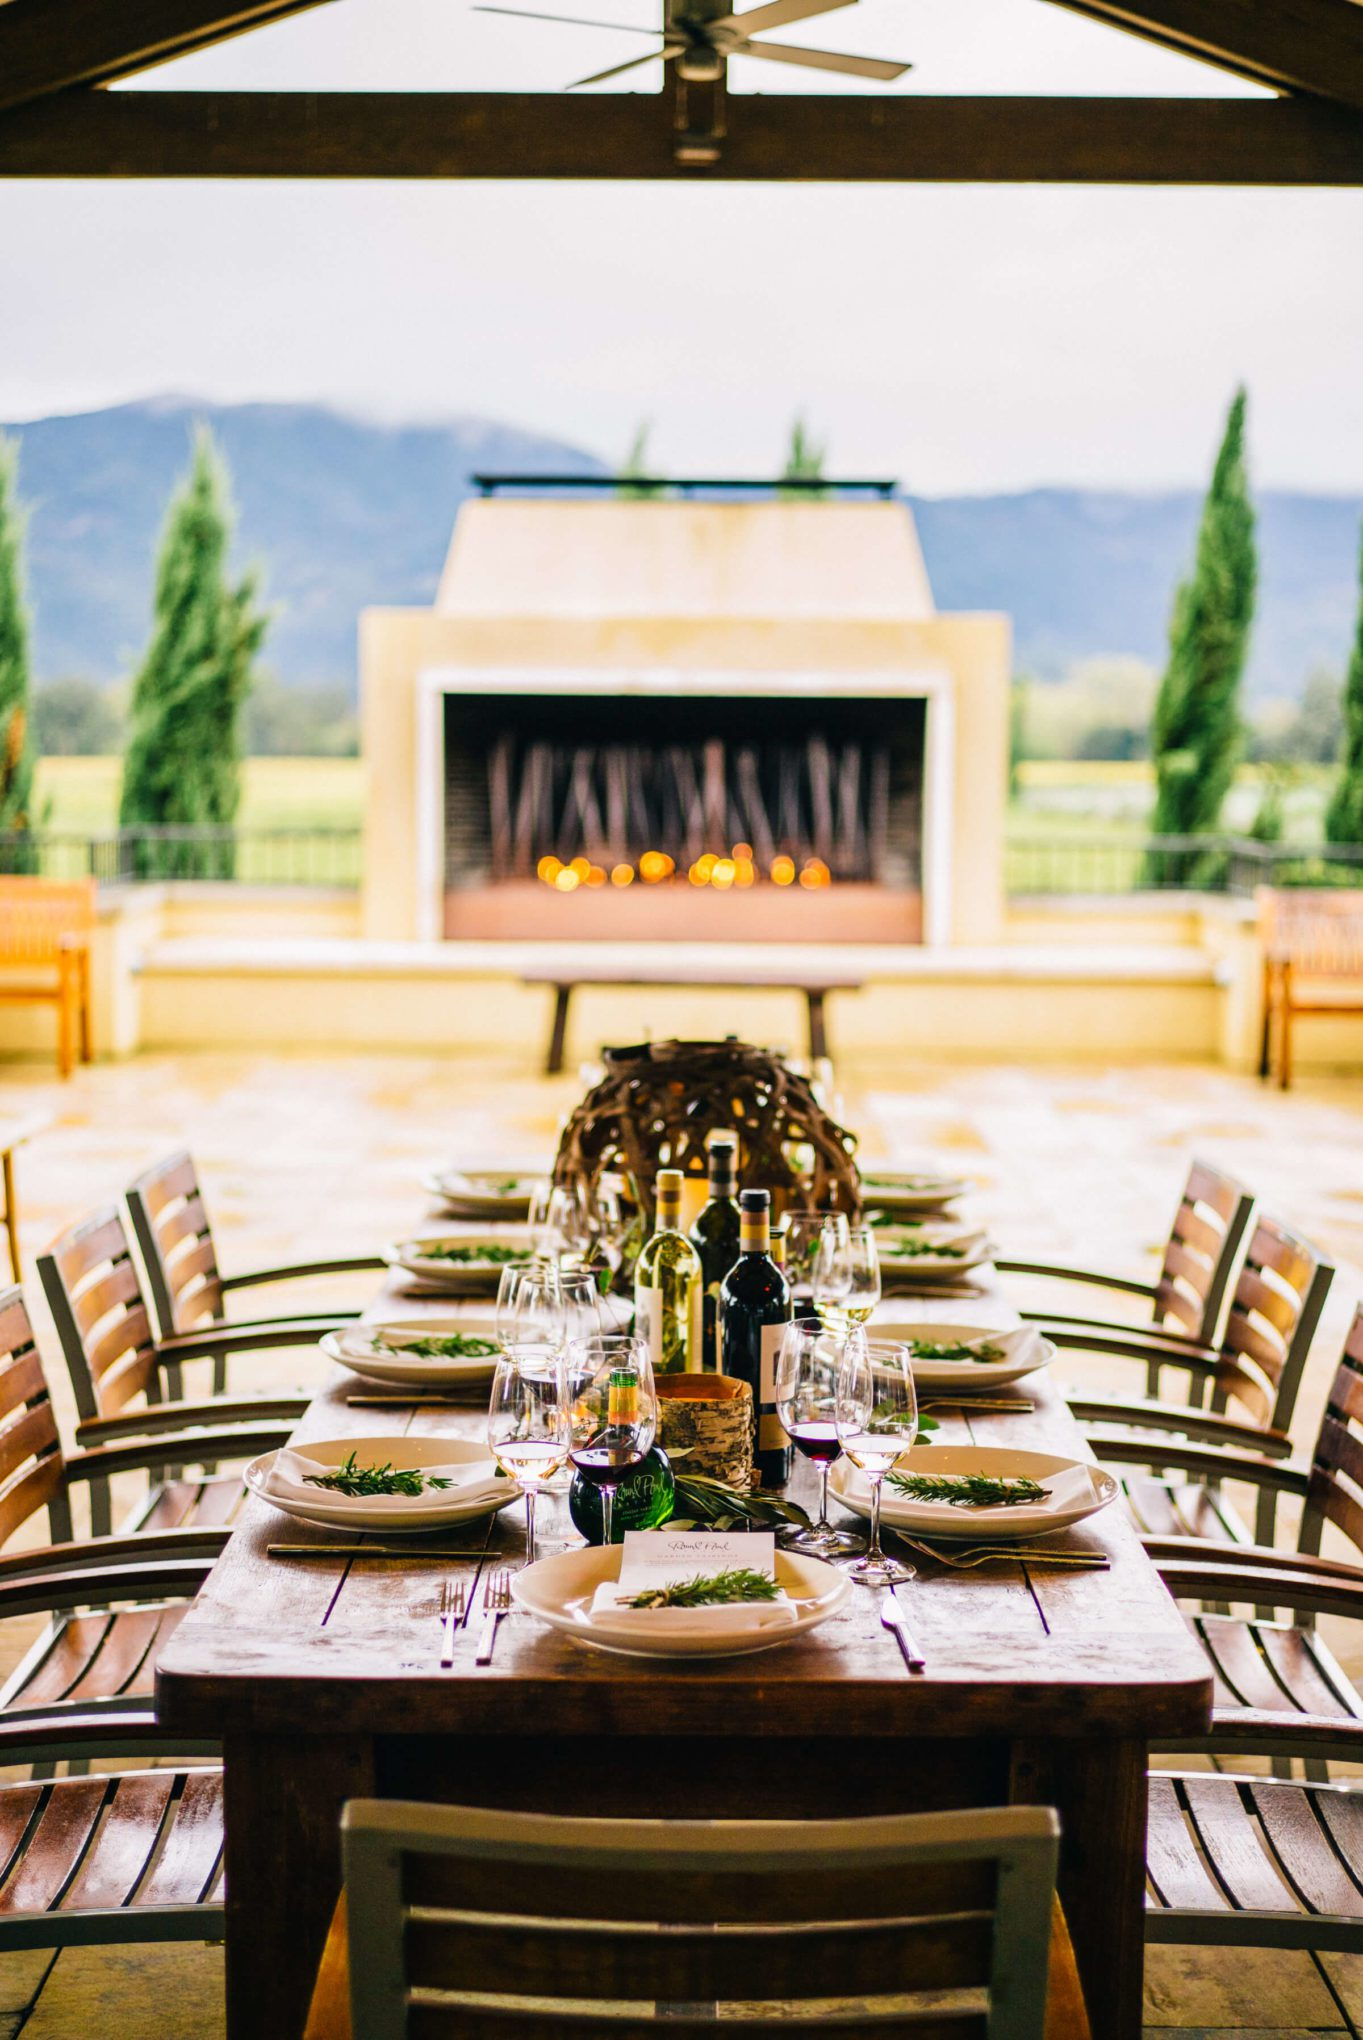 The table setting at Round Pond Estate was perfect with a cozy fire and plenty of wine for thanksgiving